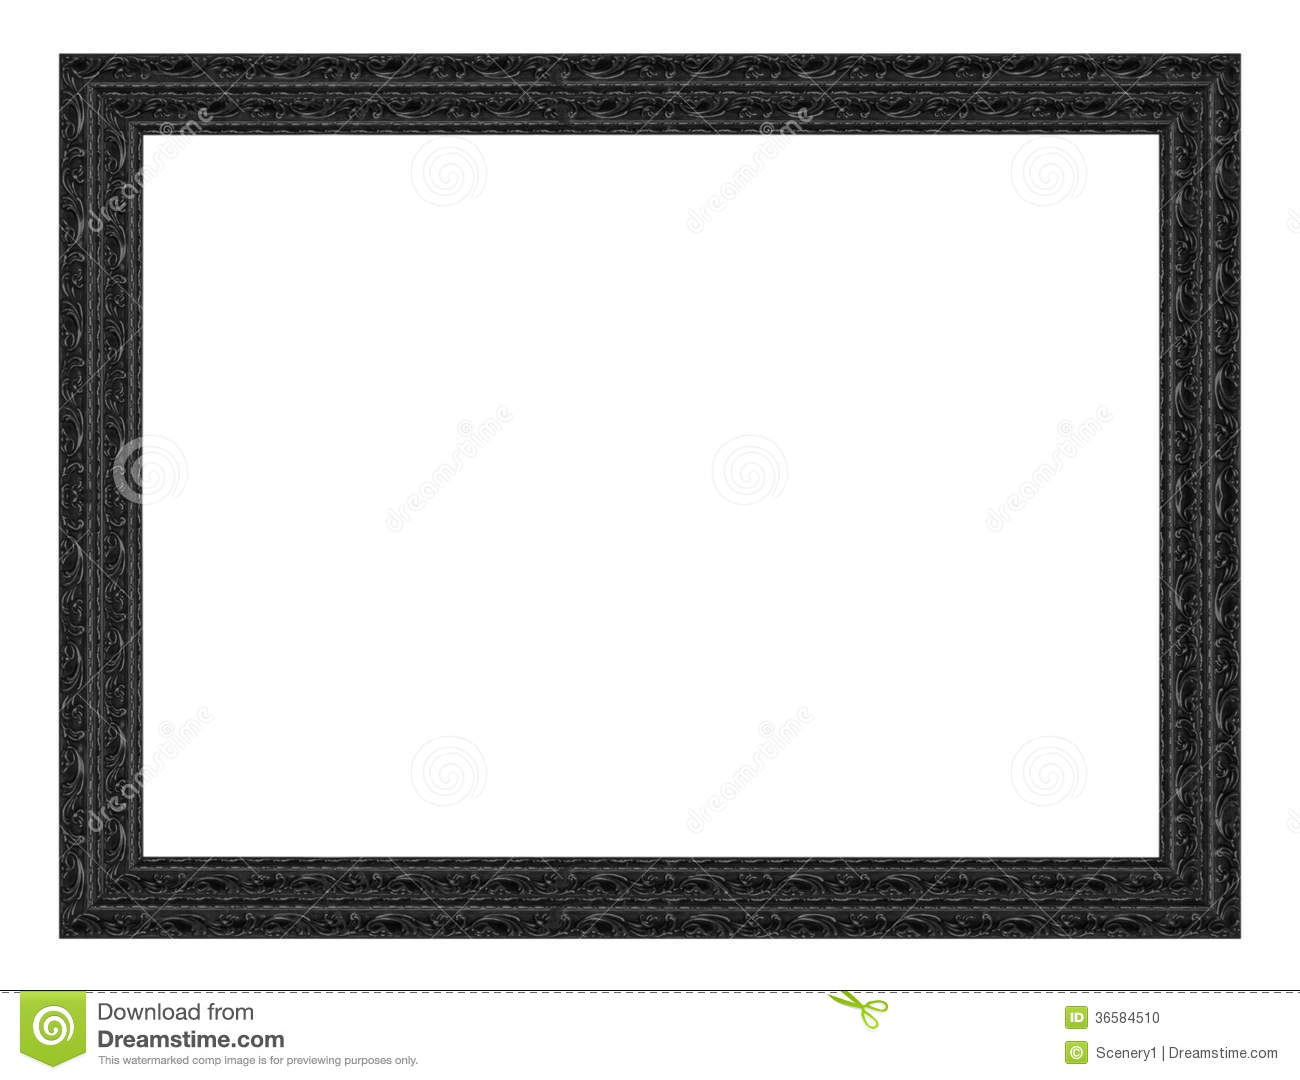 Picture Frame stock photo. Image of decorative, many - 36584510